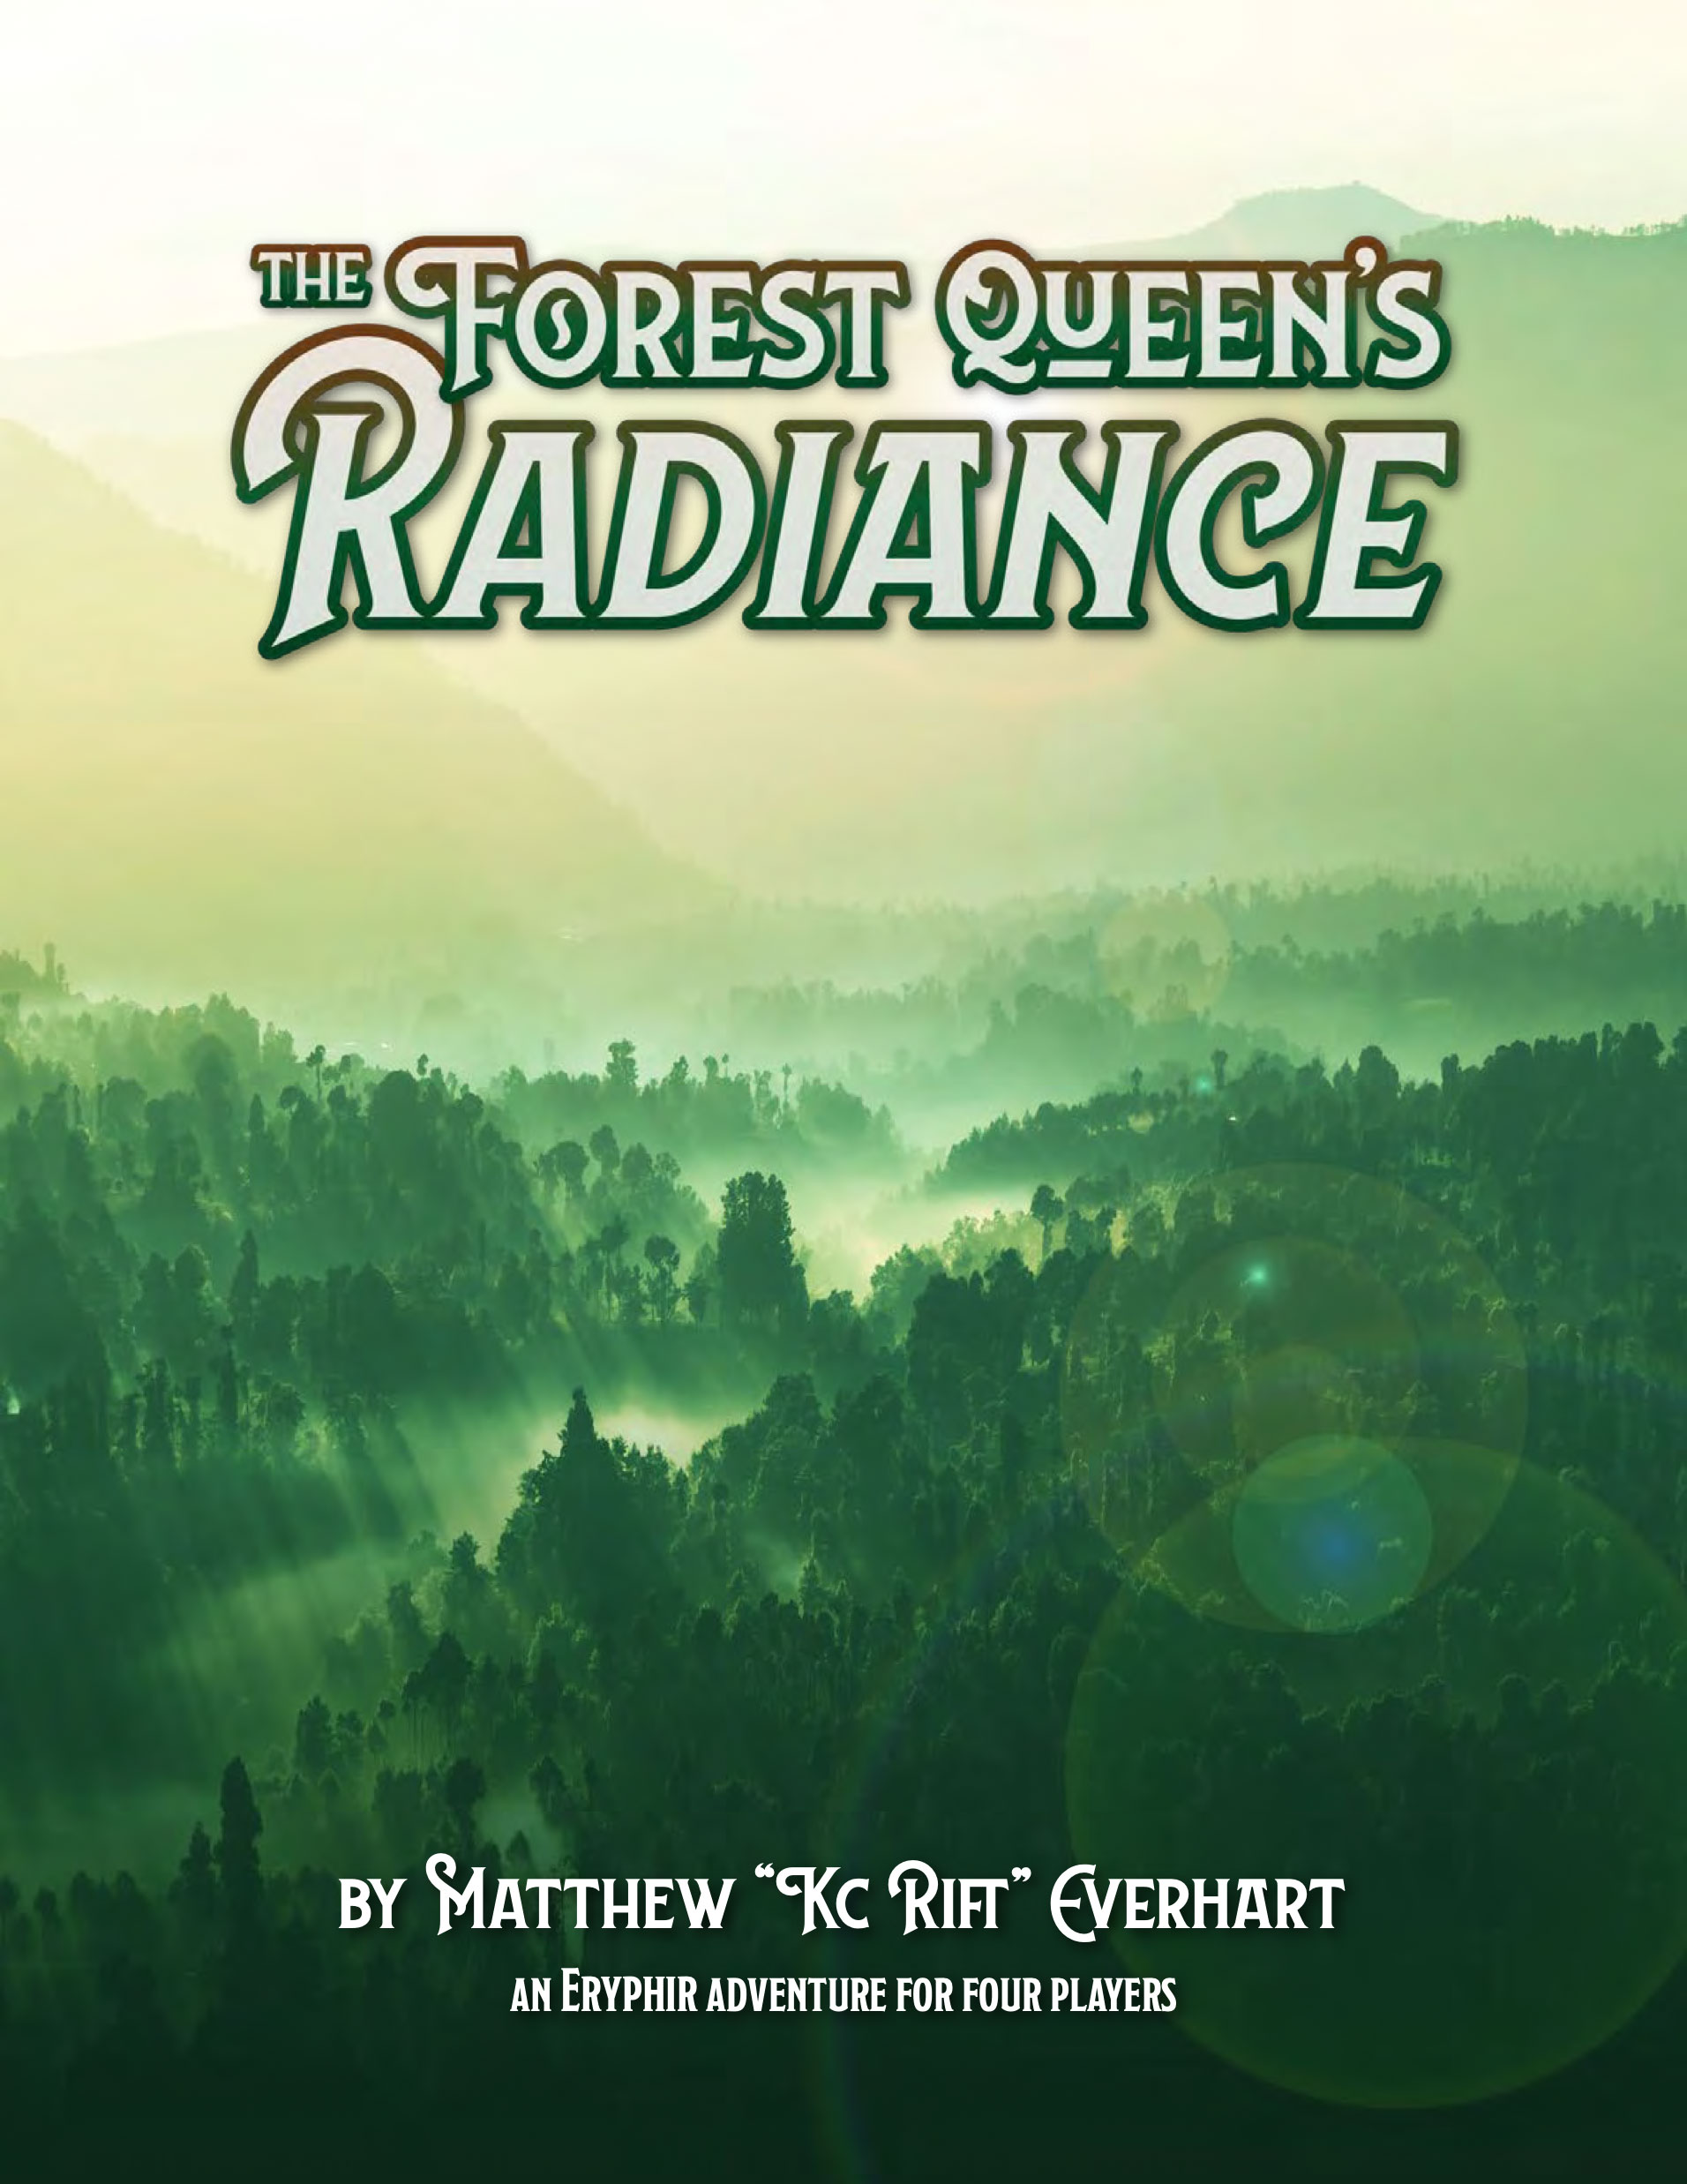 Eryphir-5E-Compatible-Forest-Queens-Radiance10-19-SM-117